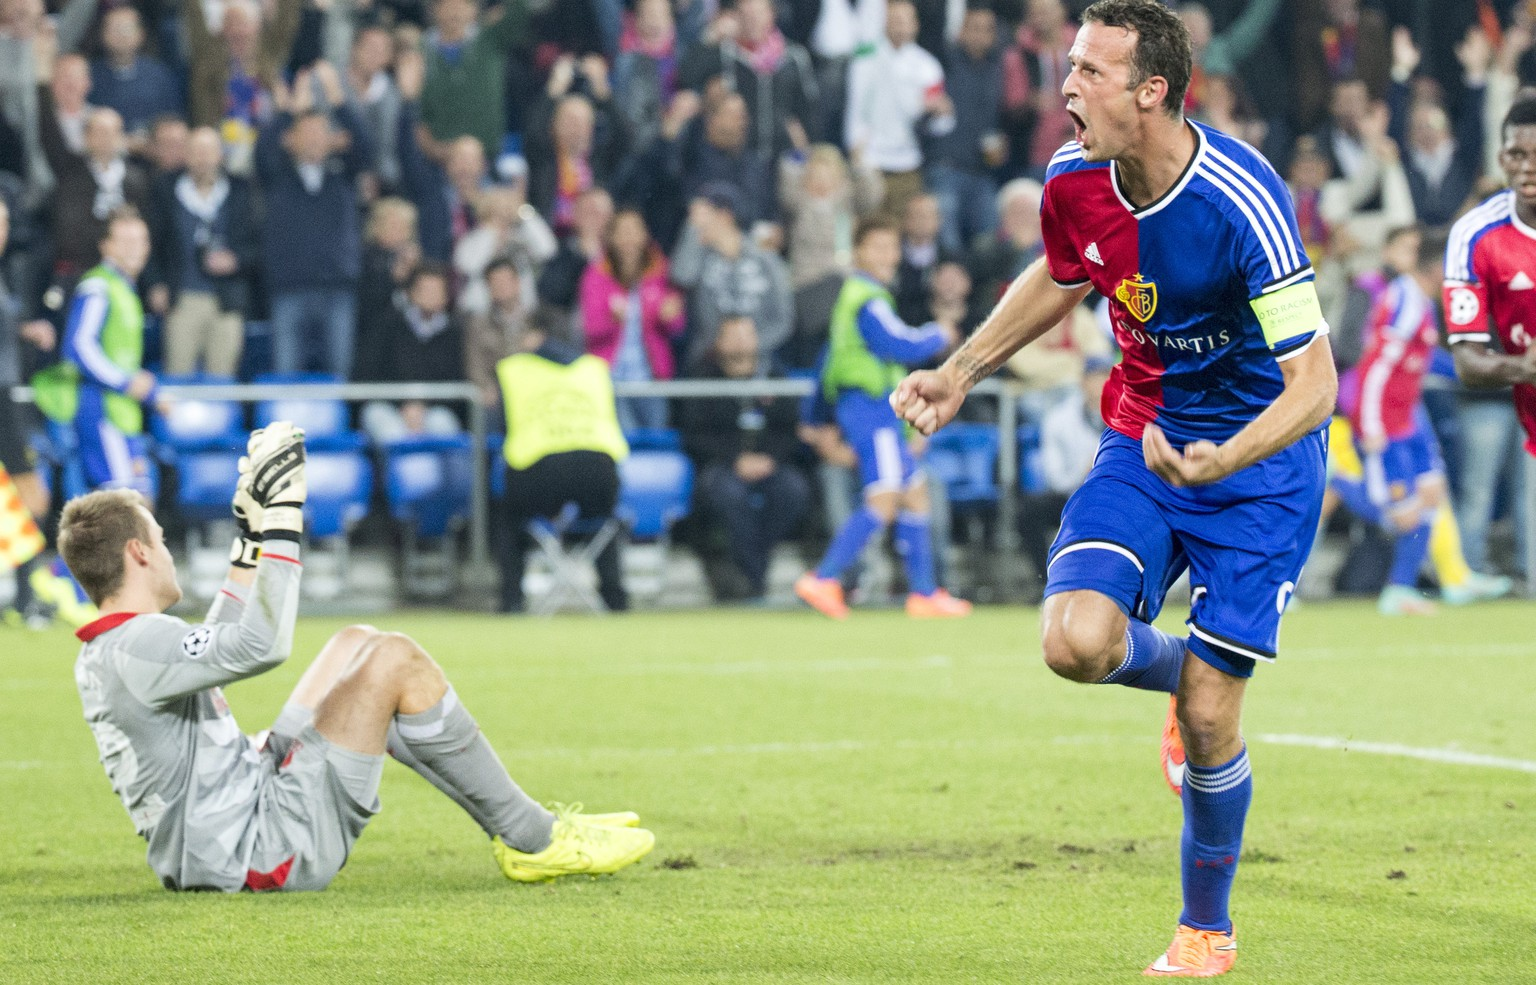 Basel's Marco Streller, right, celebrates his first goal, during an UEFA Champions League group B matchday 2 soccer match between Switzerland's FC Basel 1893 and Britain's Liverpool FC in the St. Jakob-Park stadium in Basel, Switzerland, on Wednesday, October 1, 2014. (KEYSTONE/Patrick Straub)